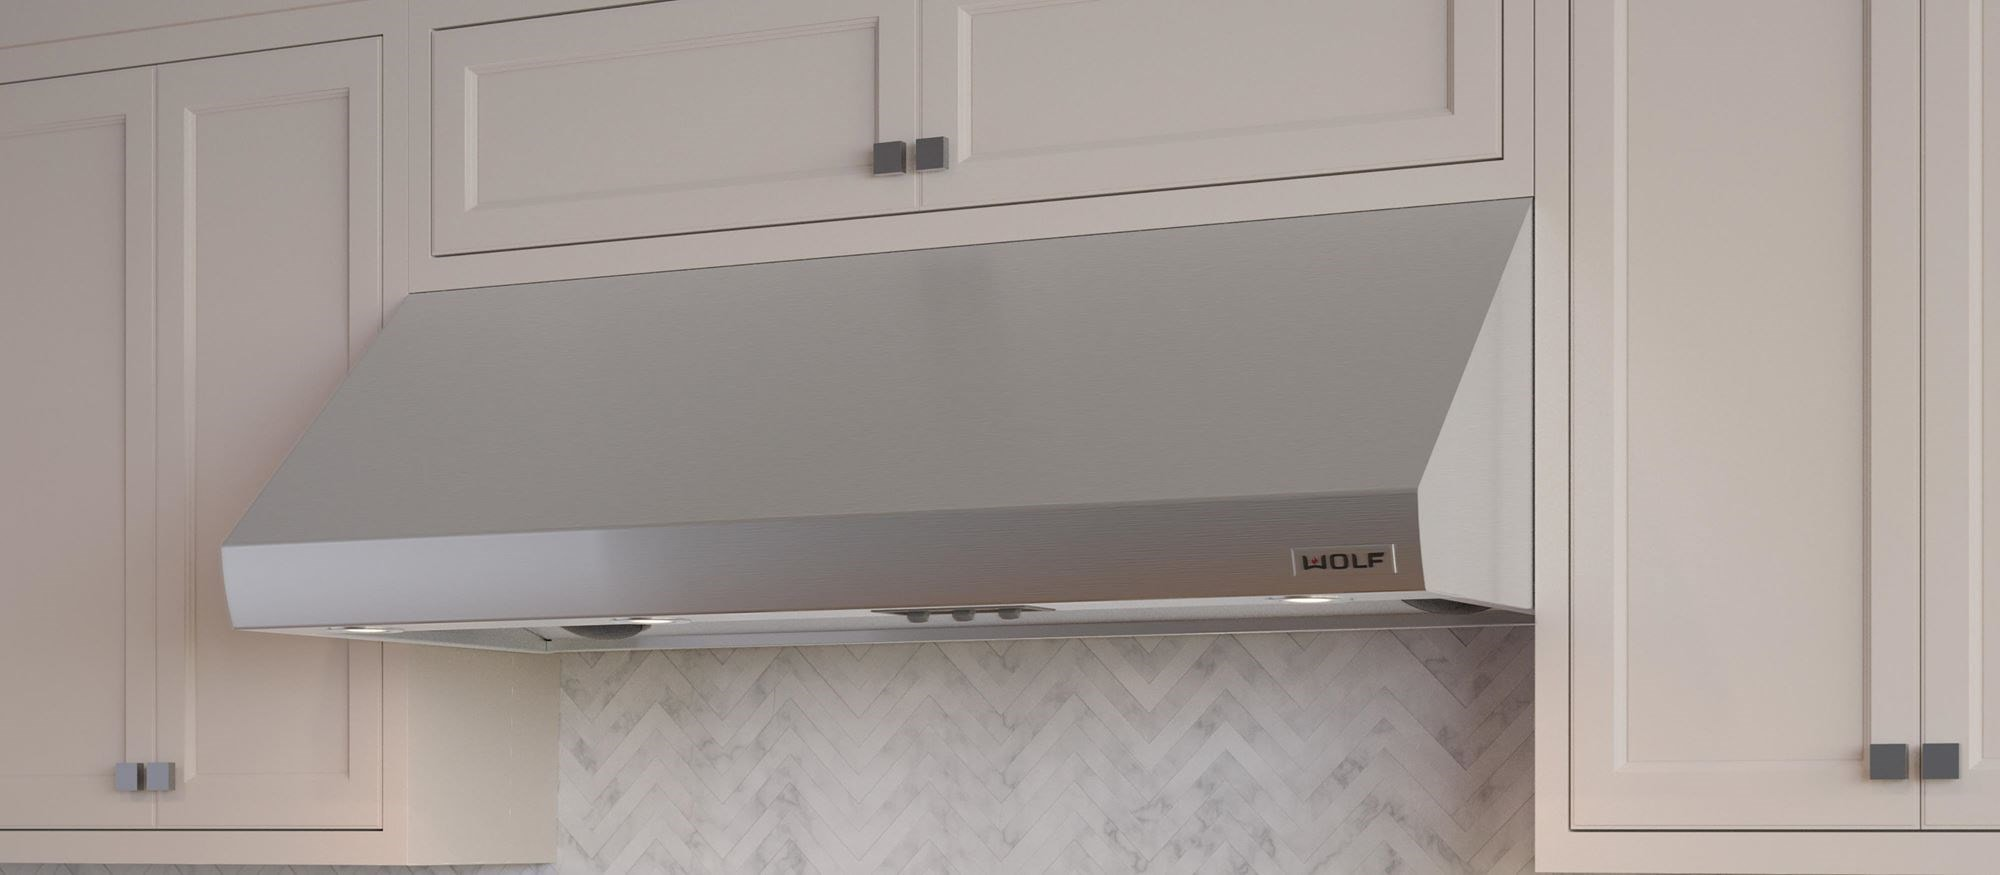 "Wolf 60"" Pro Wall Hood - 27"" Depth (PW602718)"